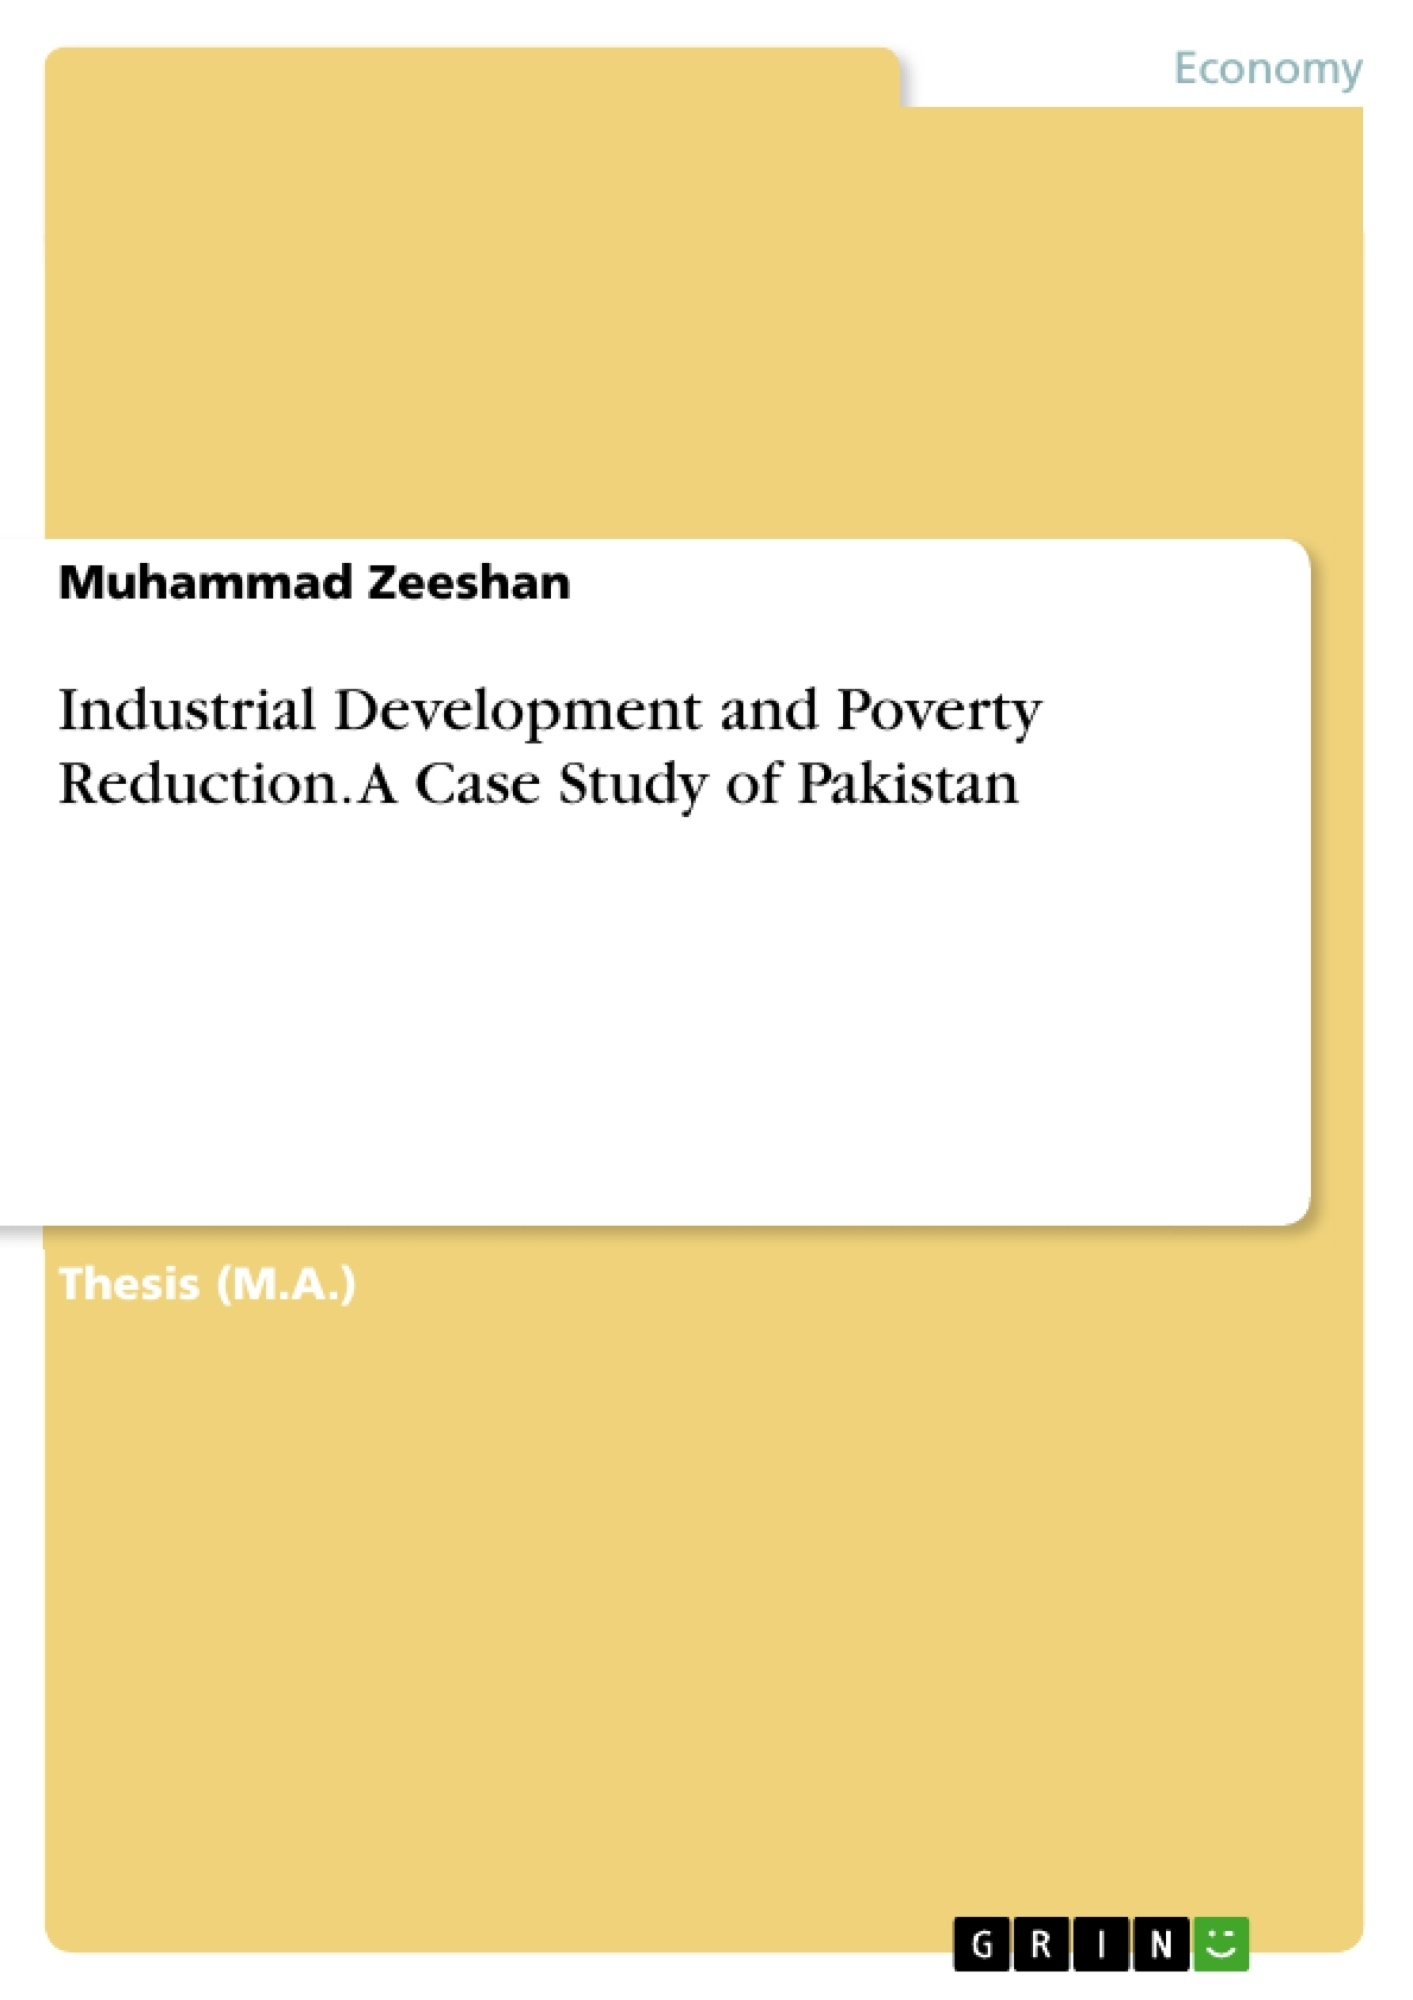 Title: Industrial Development and Poverty Reduction. A Case Study of Pakistan